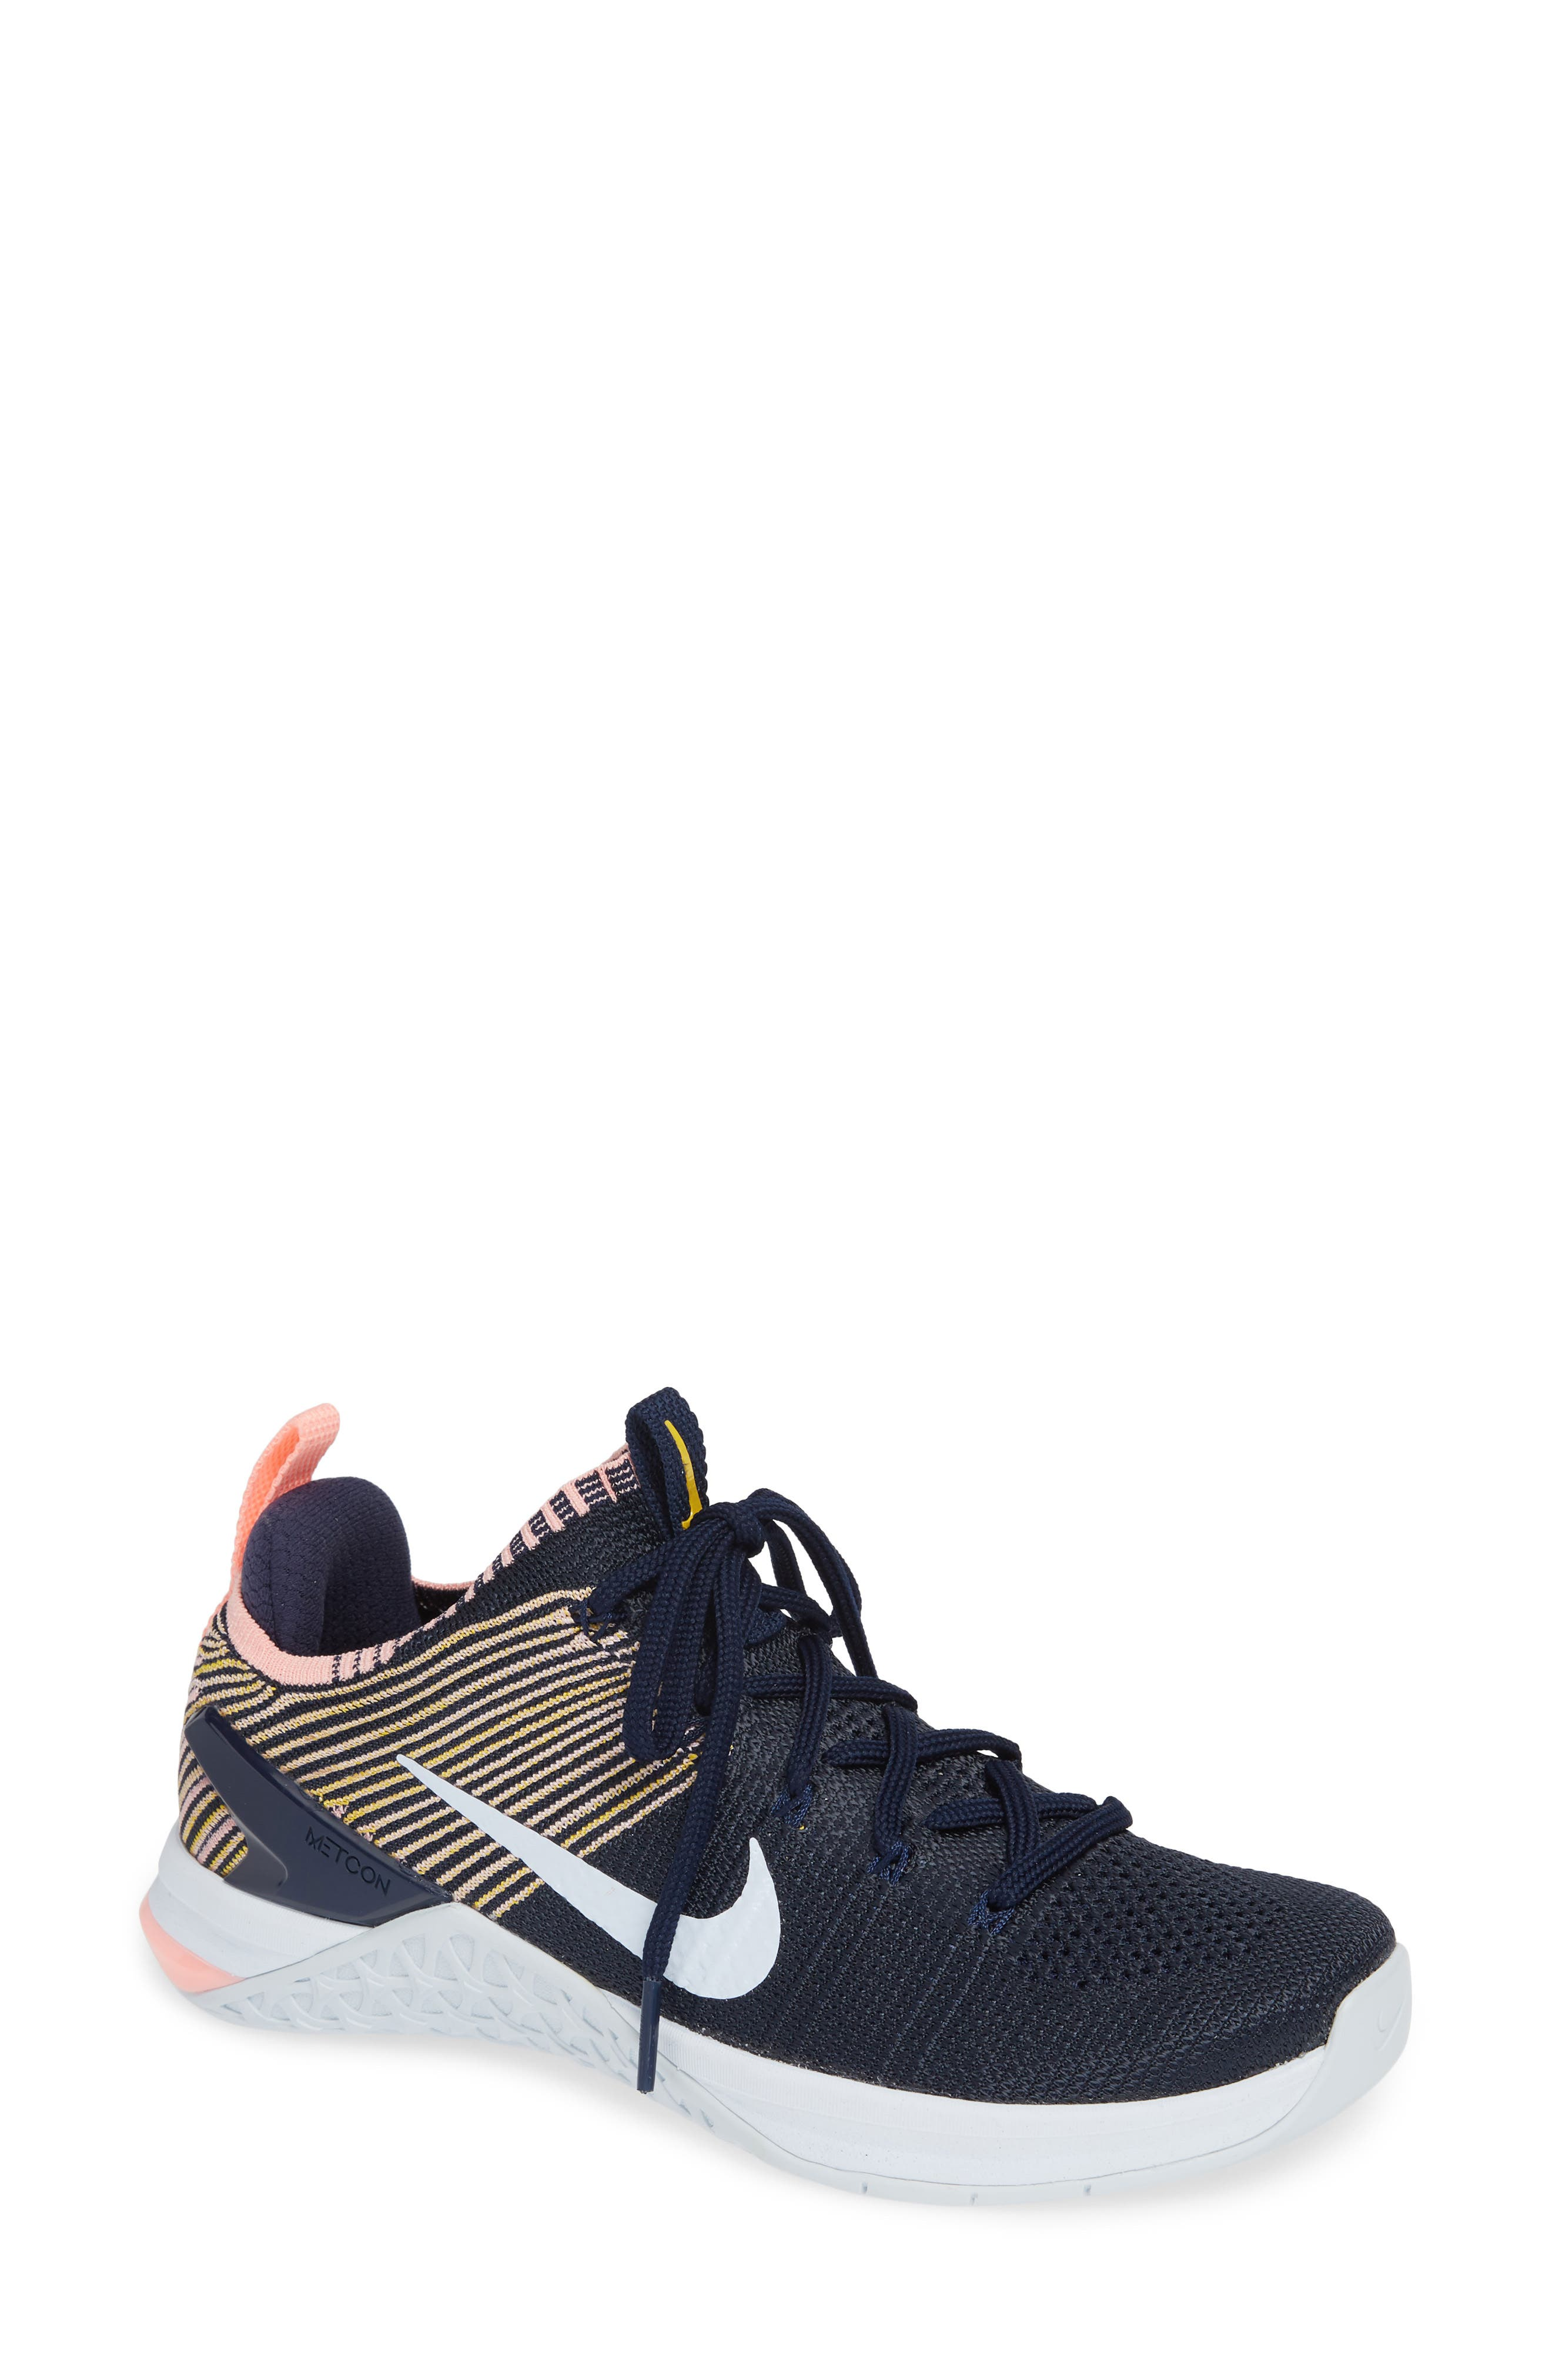 Metcon DSX Flyknit 2 Training Shoe,                             Main thumbnail 1, color,                             College Navy/ Blue Tint/ Pink